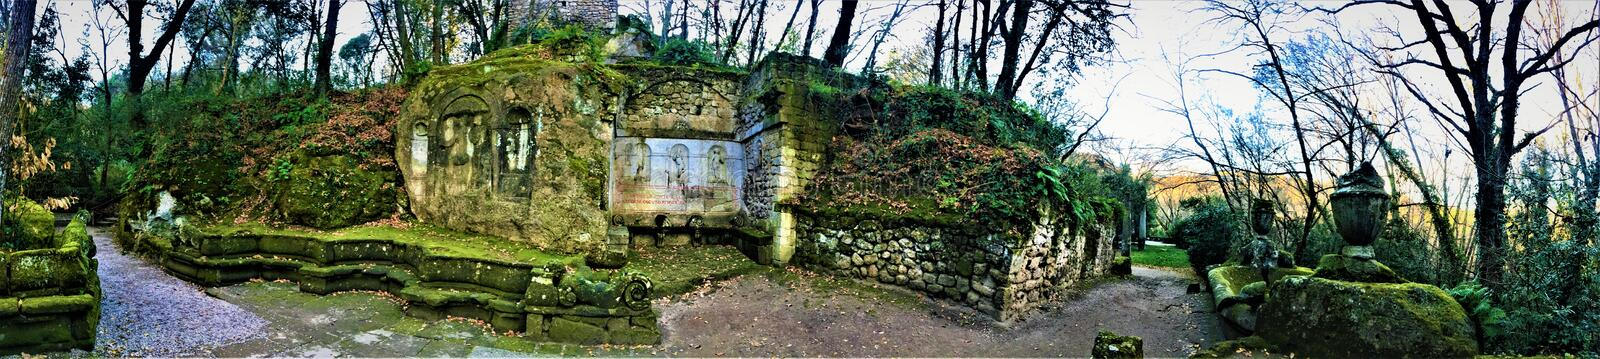 Park of the Monsters, Sacred Grove, Garden of Bomarzo. Surreal nature alchemy. Park of the Monsters, Sacred Grove, Garden of Bomarzo, a Manieristic monumental stock photography